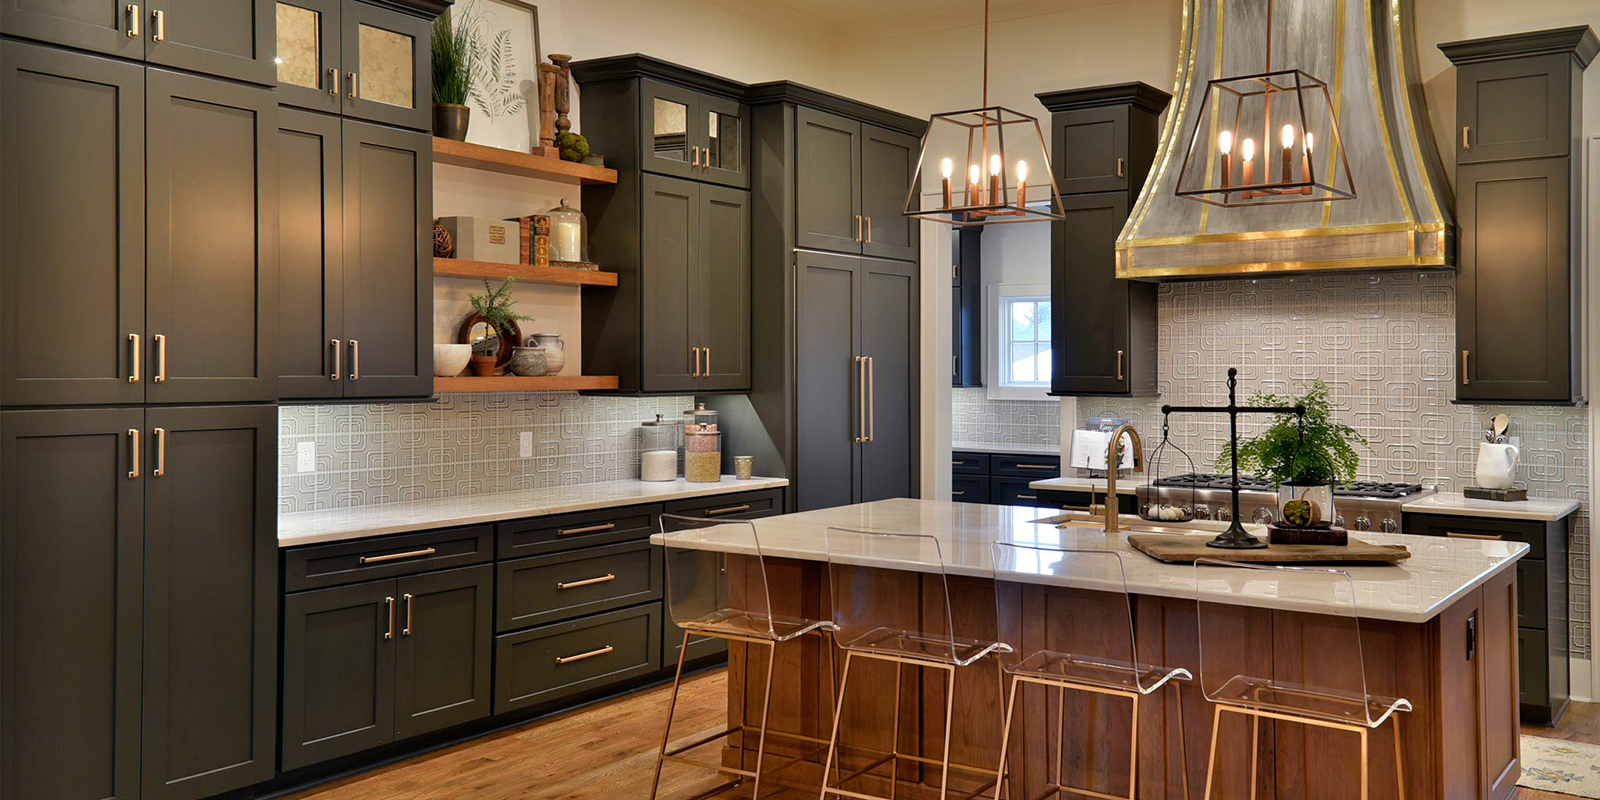 Find top-quality cabinetry at Humphrey's Kitchen and Bath ...